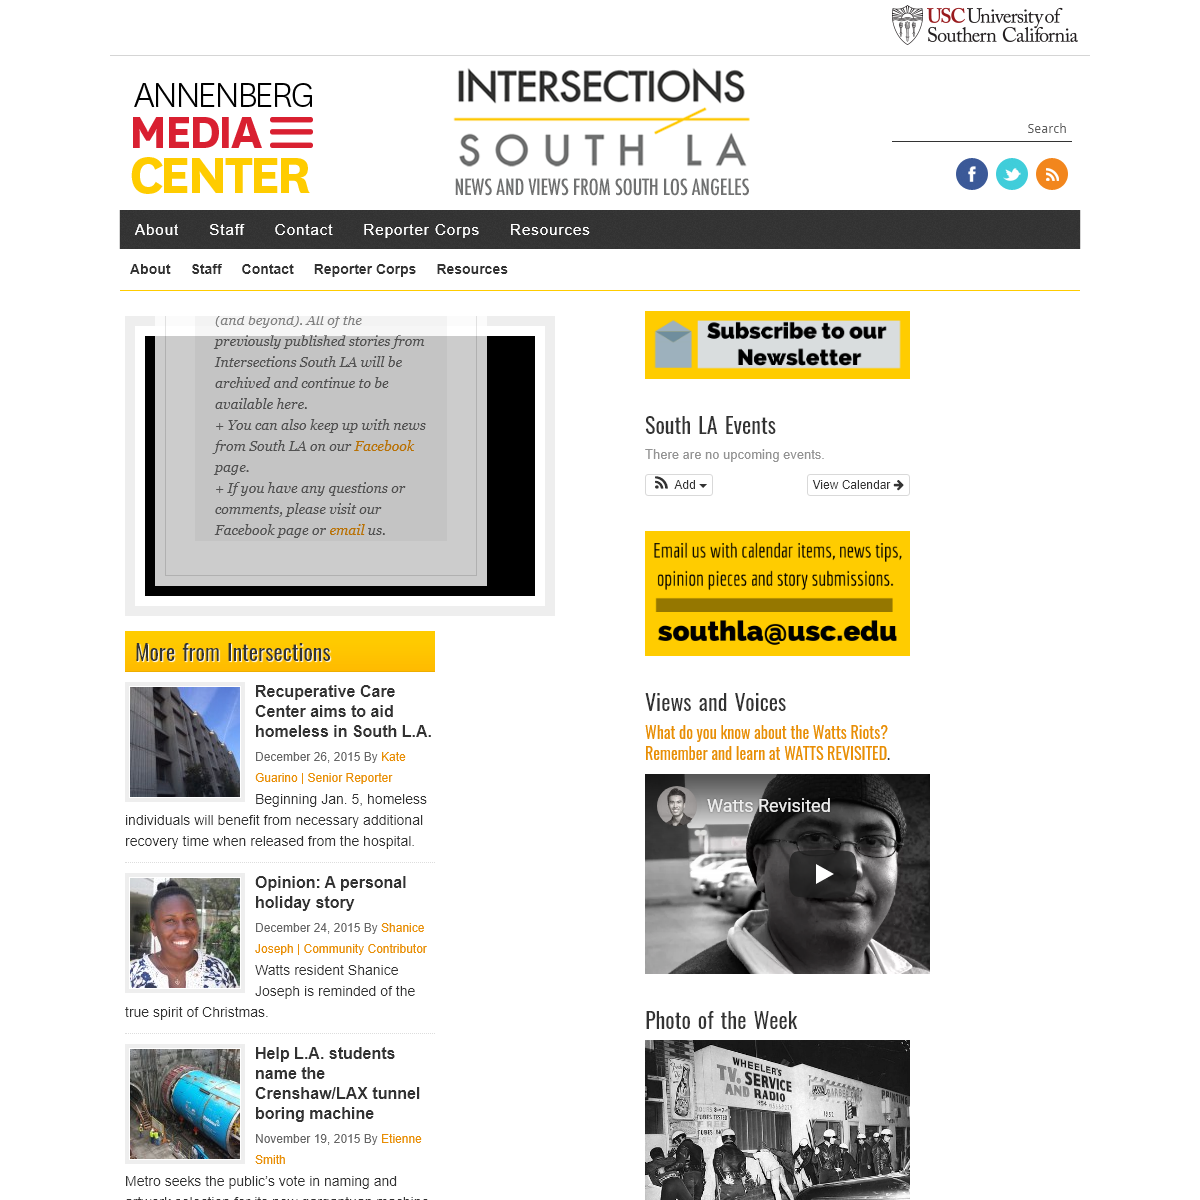 Intersections South LA — News and views from South Los Angeles